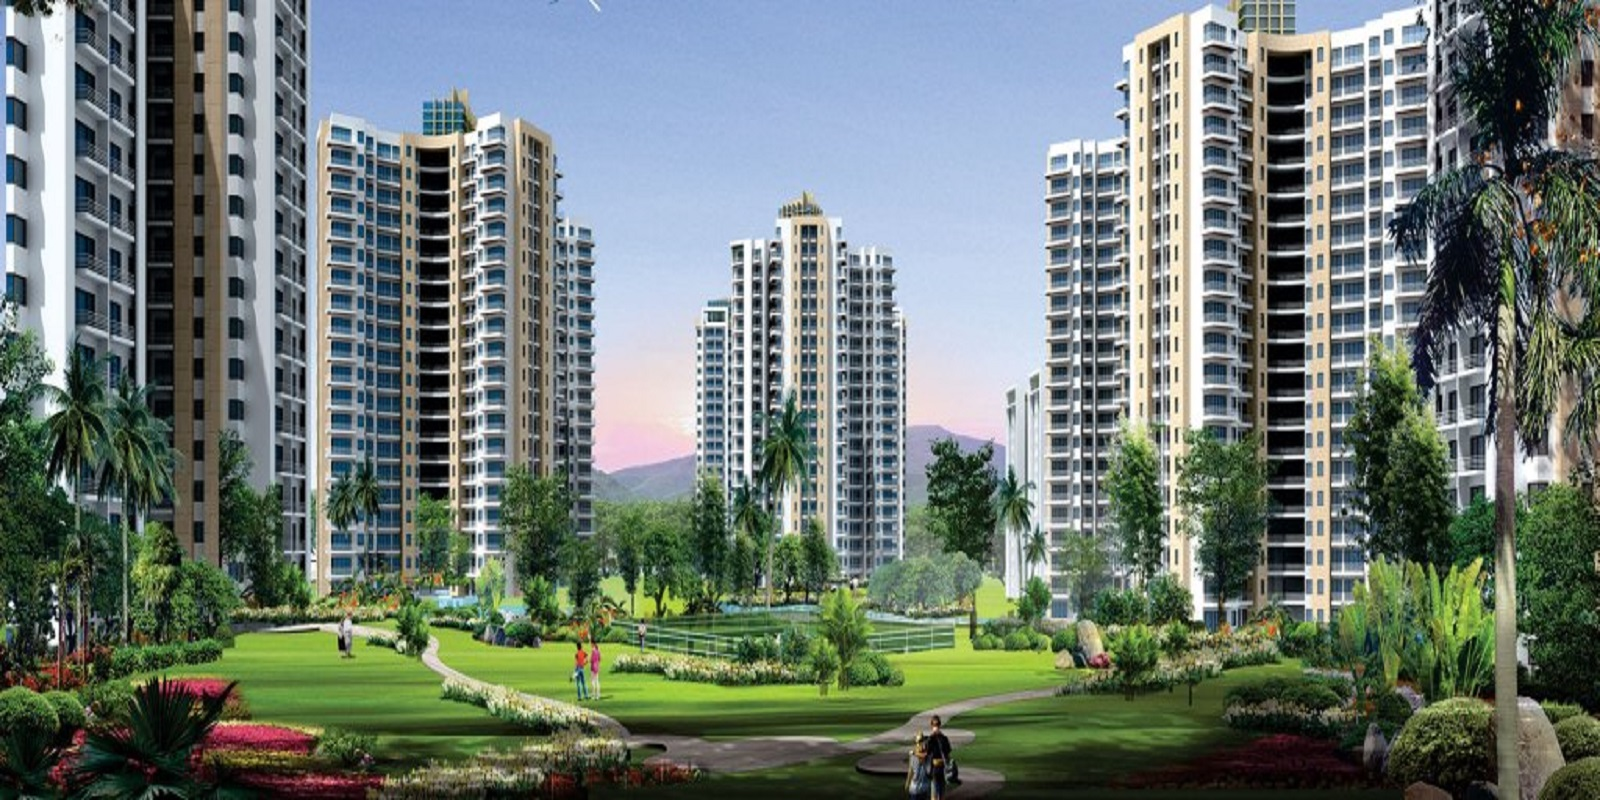 prateek sector 150 project large image1